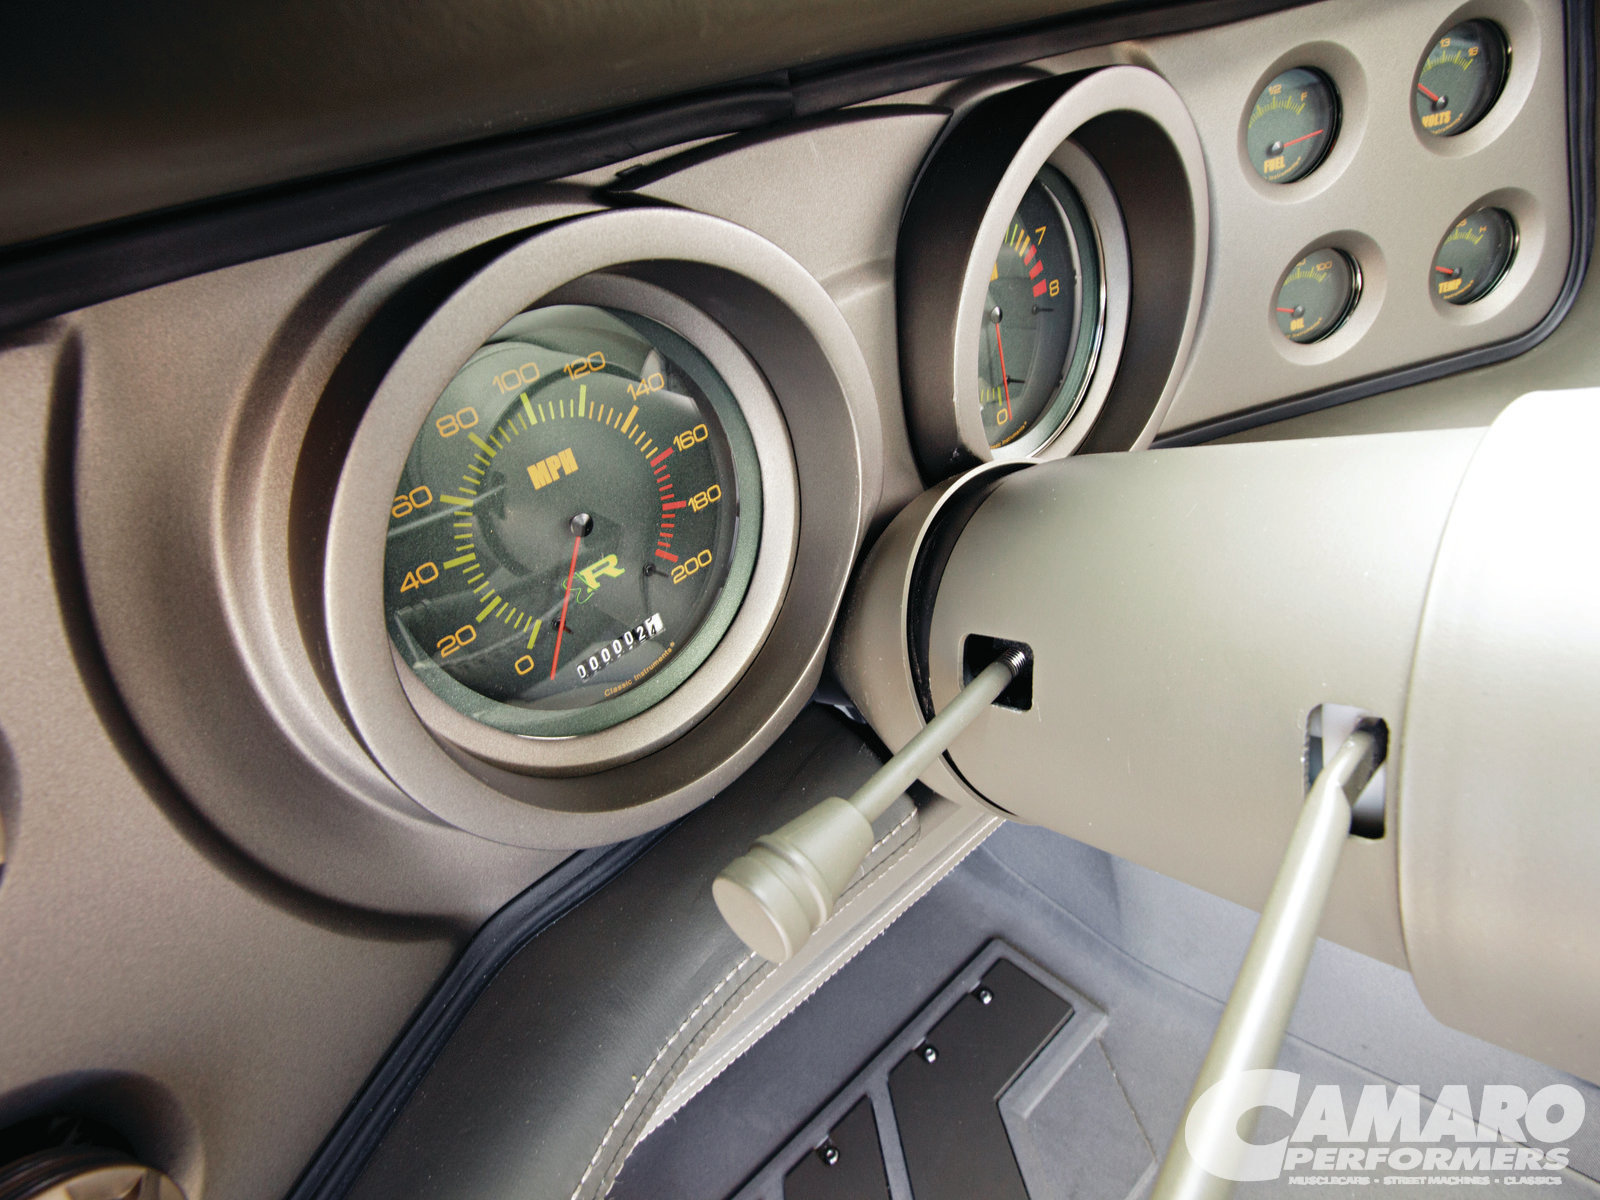 Camp 2110 09 1970 Chevrolet Camaro Instrument Gauge